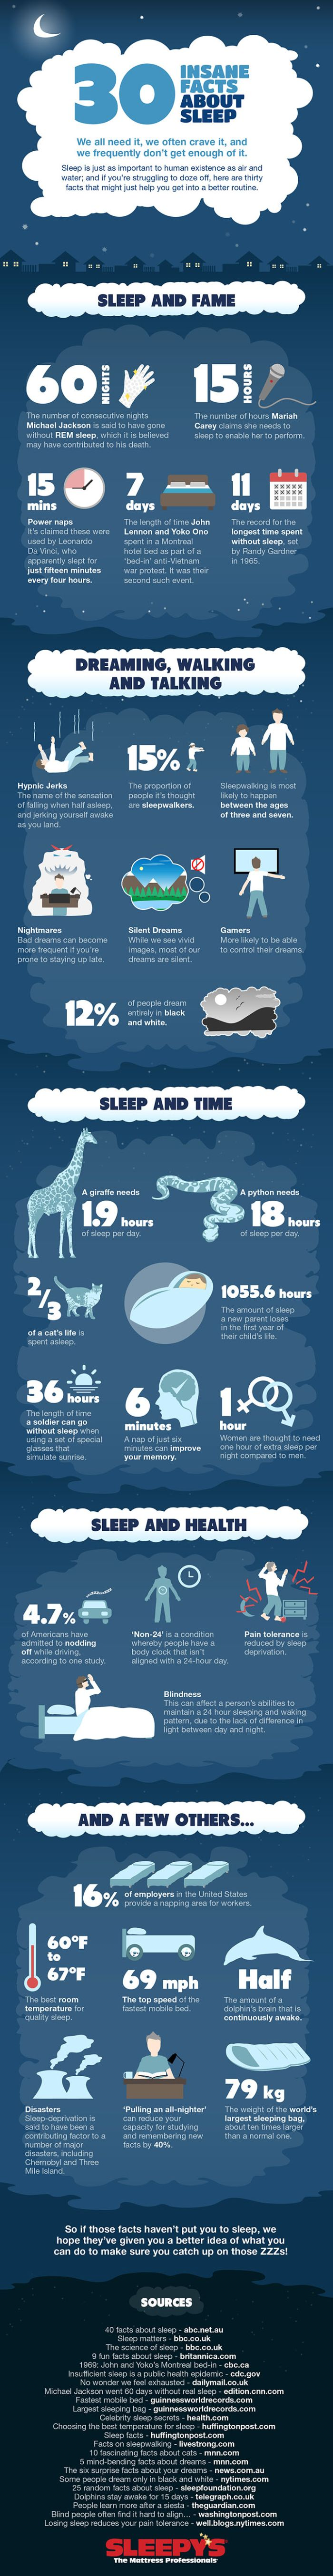 30 Facts You Didn't Know About Sleep (infographic)